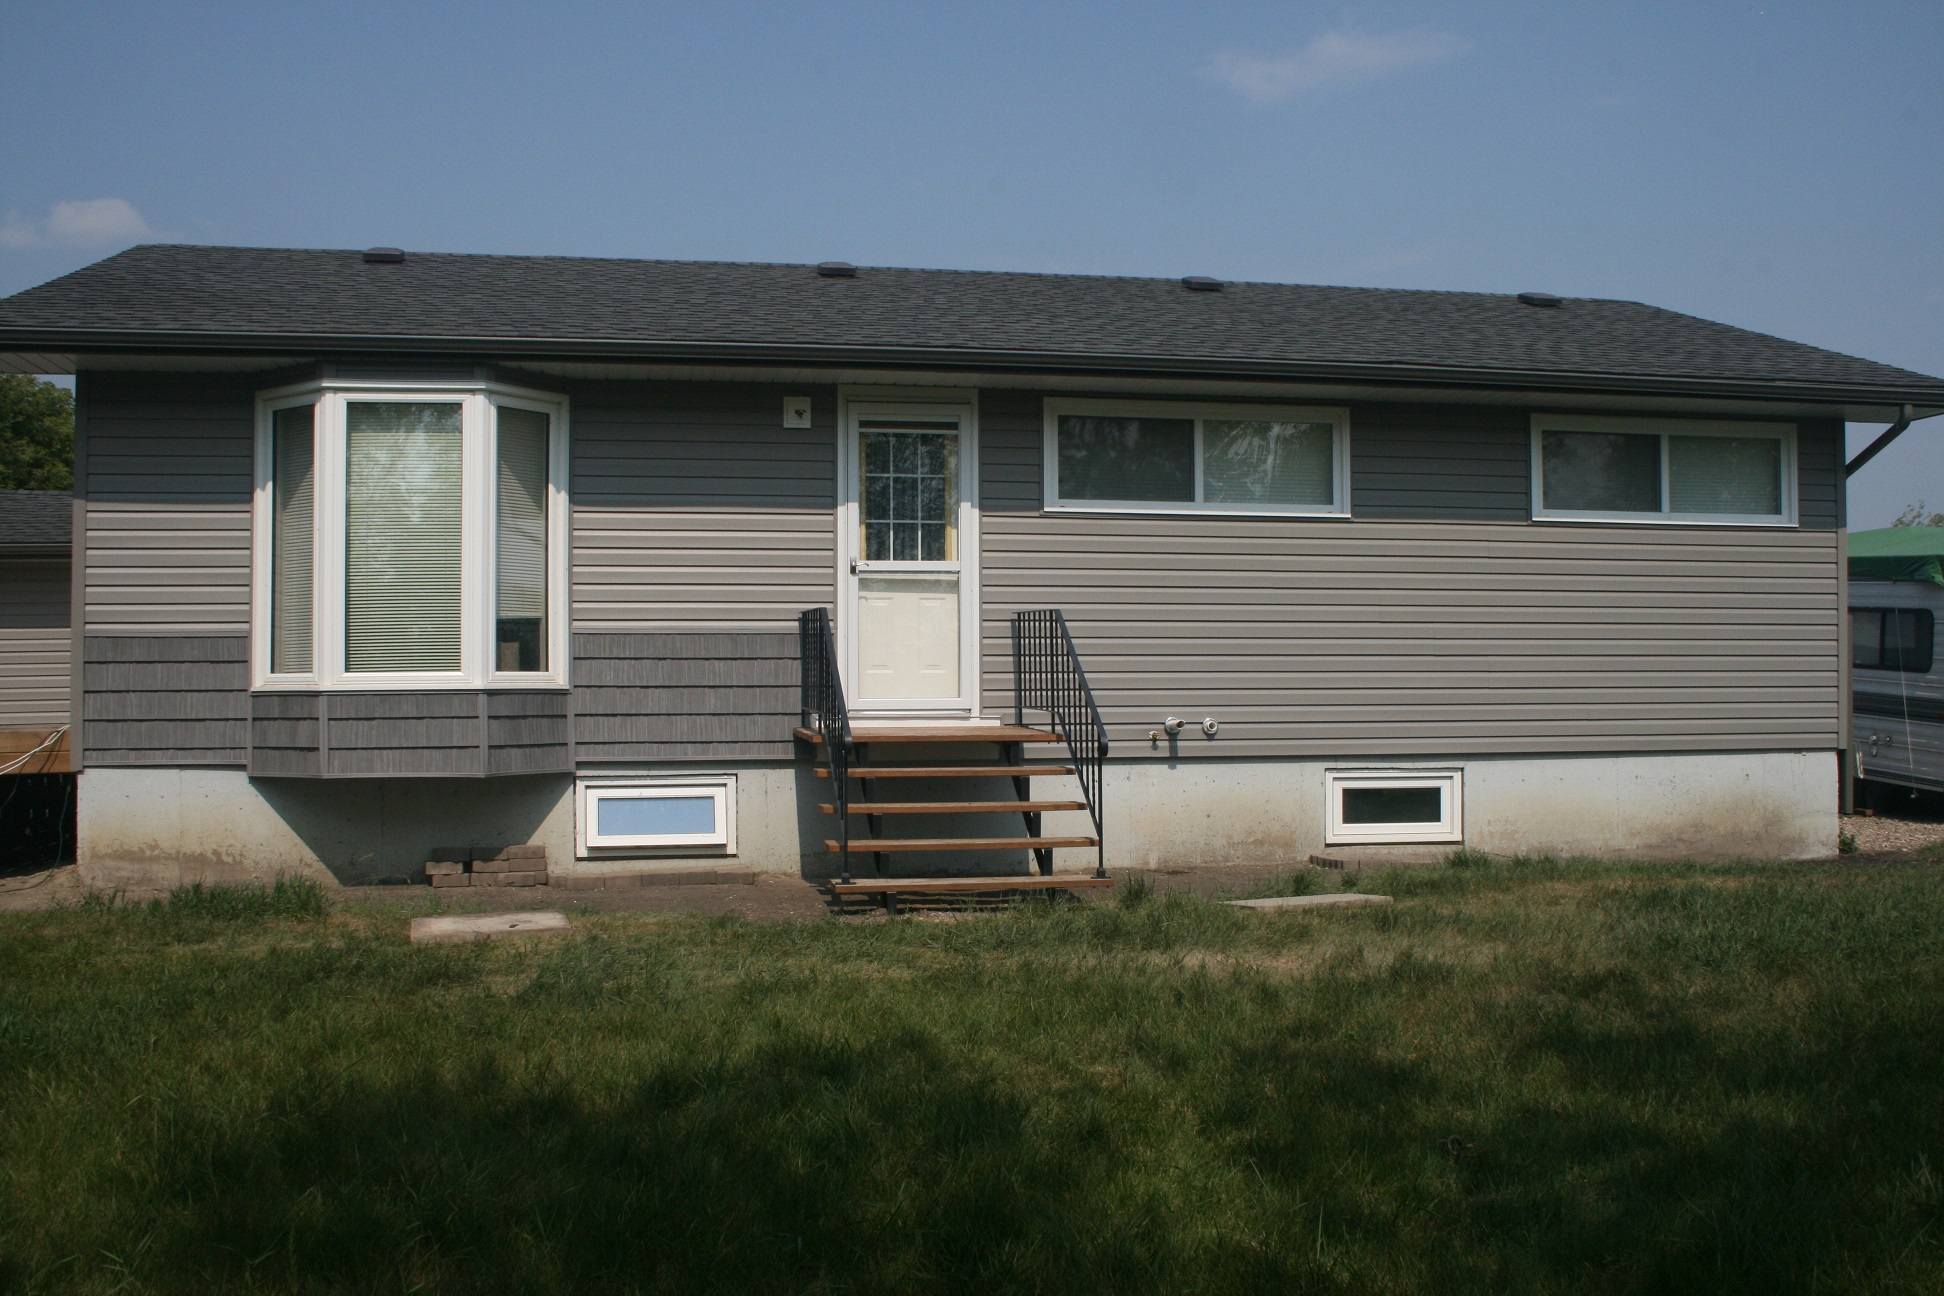 Exterior renovation on a house with hail damage. - Image 12